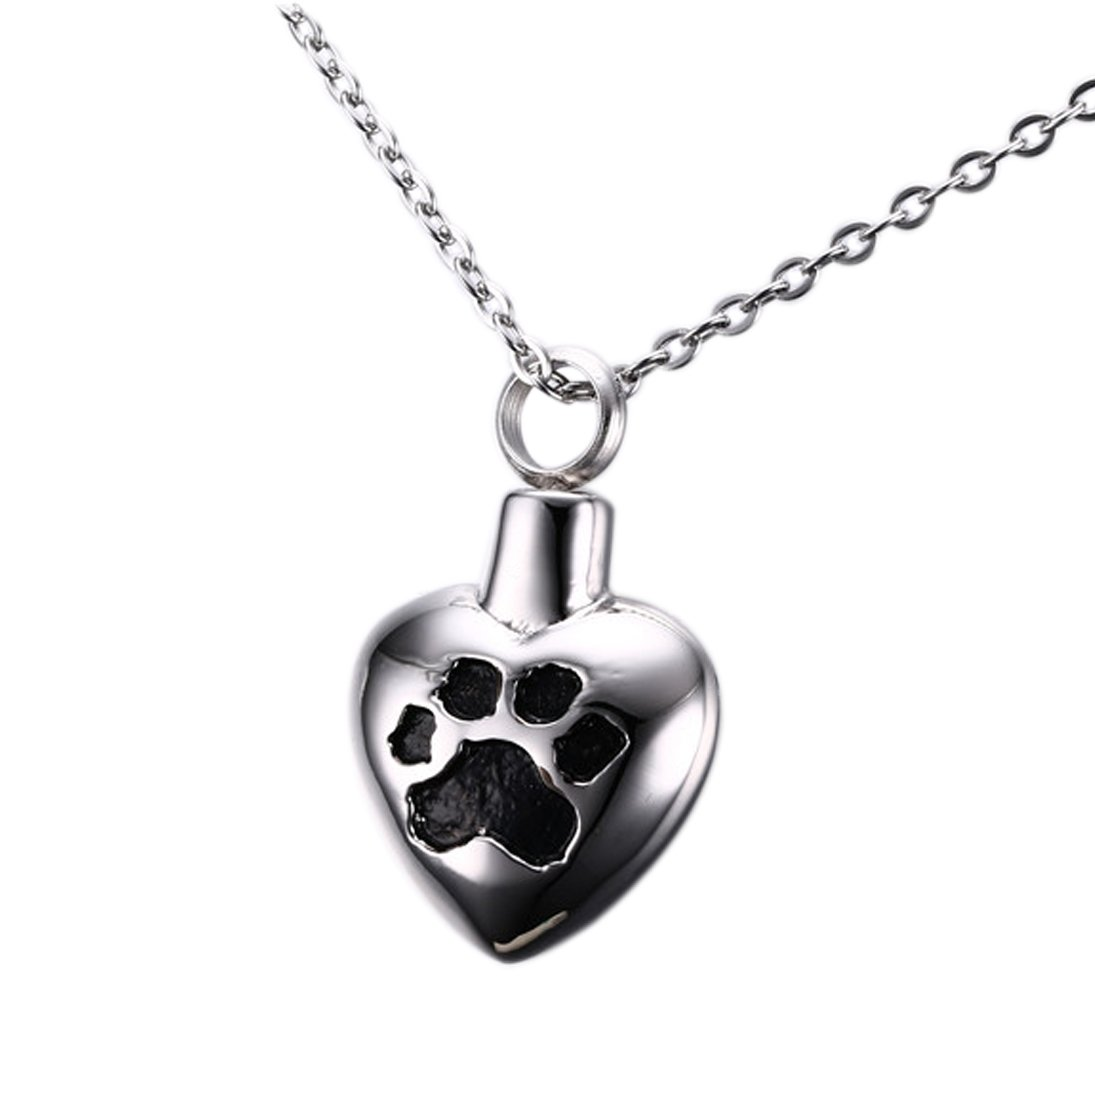 Stainless Steel Black Paw Print Heart Shape Cremation